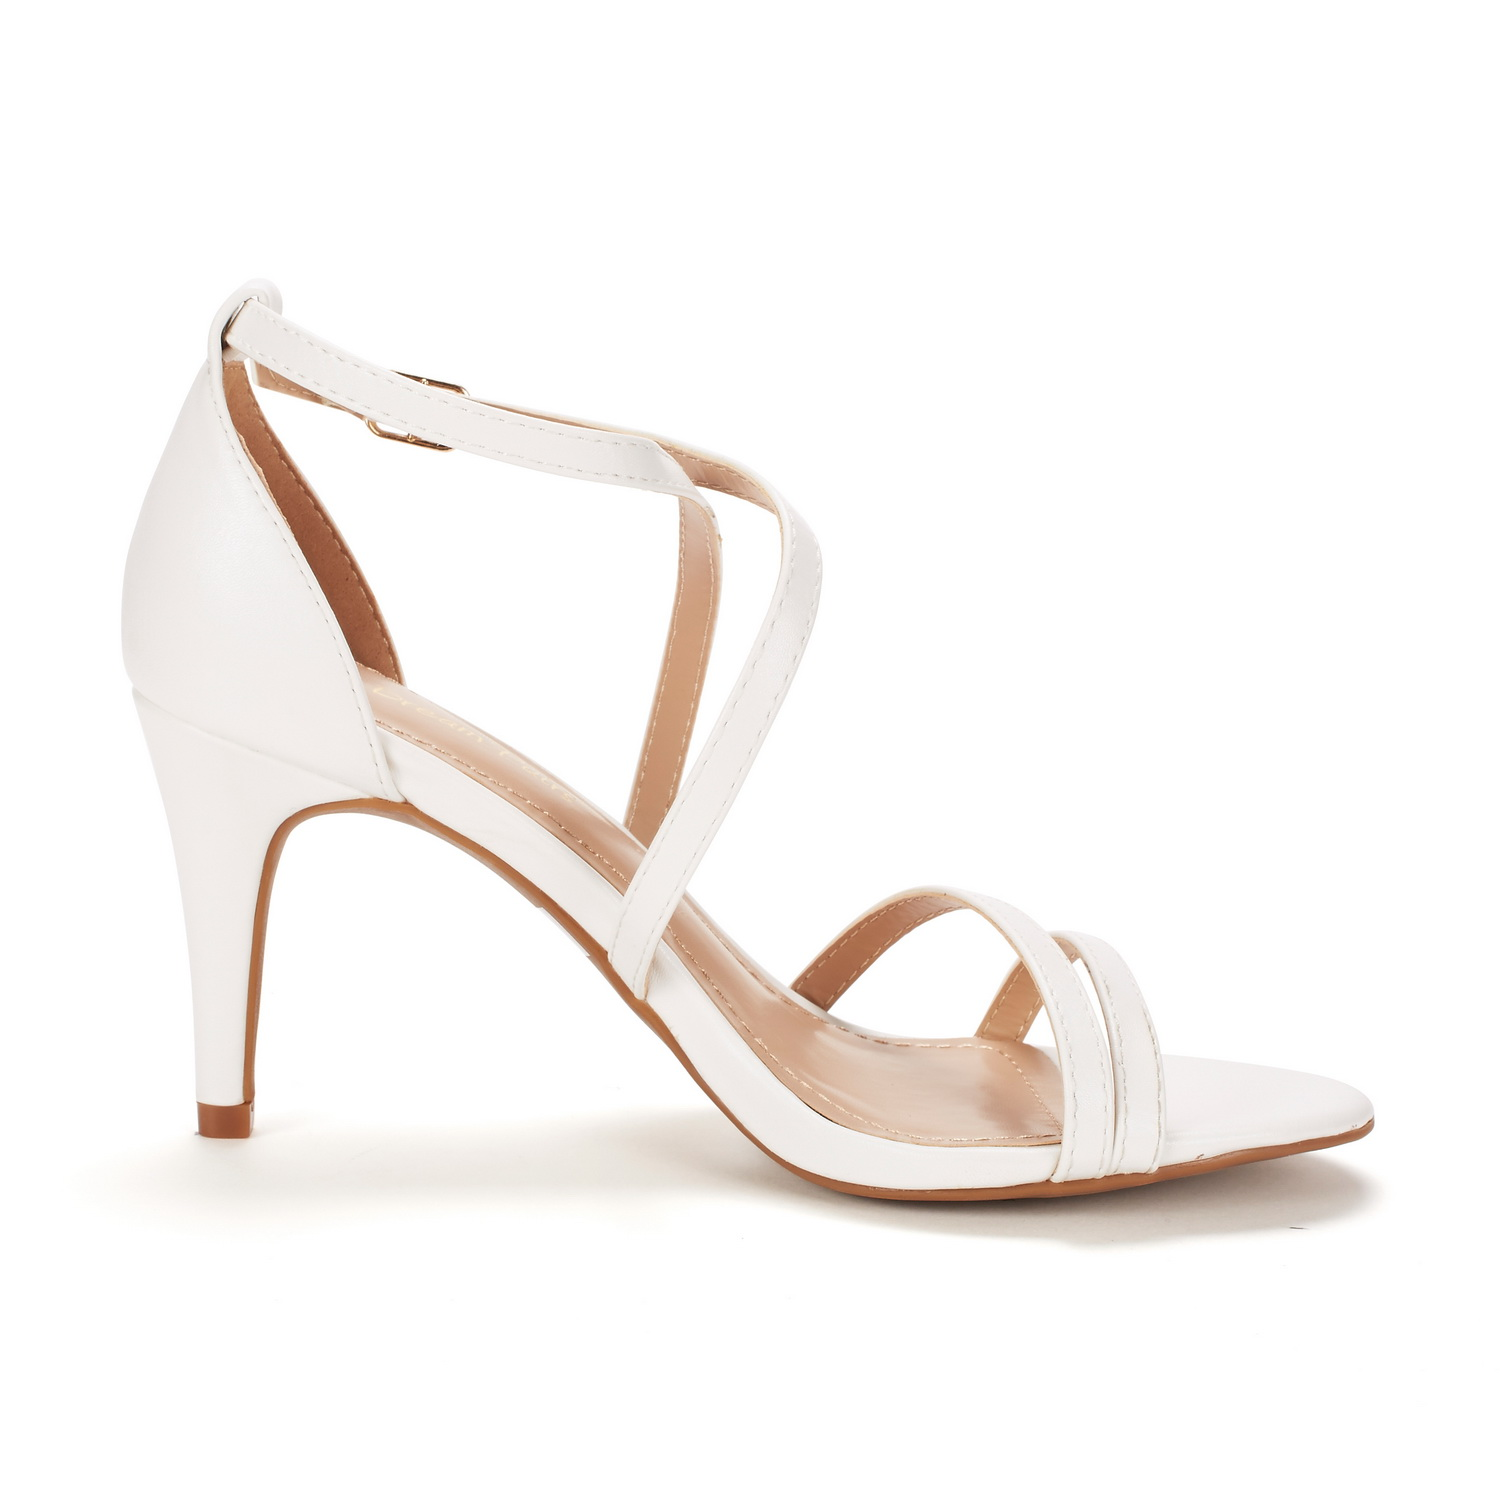 DREAM-PAIRS-Women-039-s-Ankle-Strap-High-Heel-Sandals-Dress-Shoes-Wedding-Party thumbnail 16